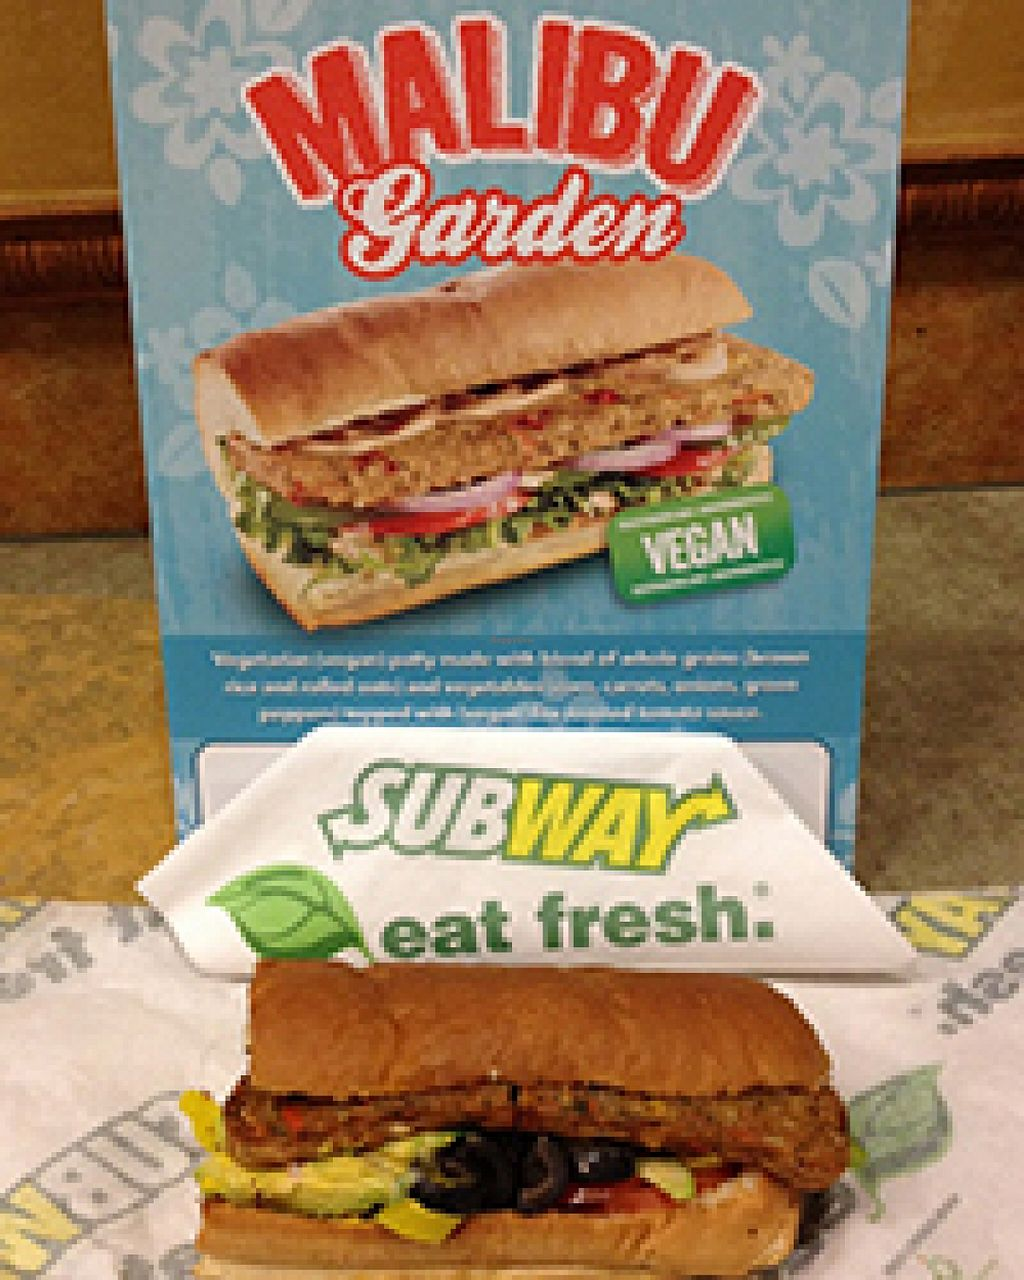 """Photo of Subway  by <a href=""""/members/profile/Veggi%2ALover"""">Veggi*Lover</a> <br/>The hearty and healthy Malibu Garden patty is chock full of whole grains such as brown rice and rolled oats, plus veggies,and comes topped with a creamy vegan fire roasted tomato sauce.and as always,you can customize your sub with additional veggies <br/> September 12, 2015  - <a href='/contact/abuse/image/63042/117437'>Report</a>"""